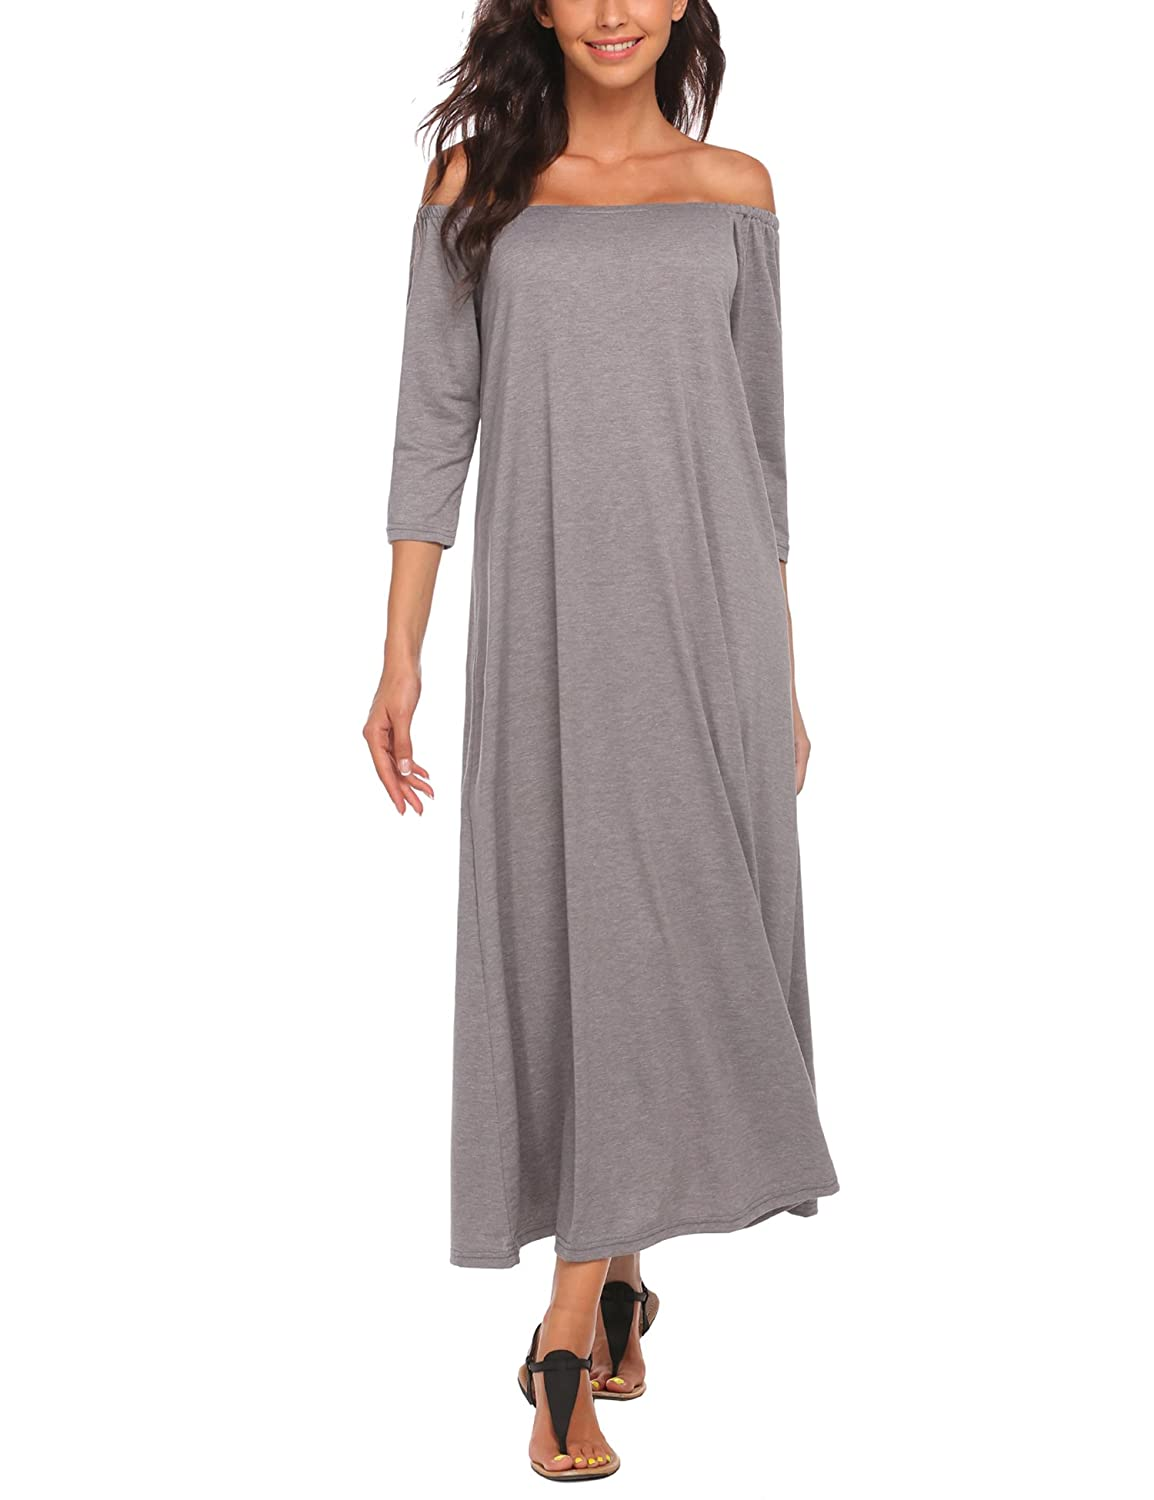 ACEVOG Women 3/4 Sleeve Slash Neck Off The Shoulder Solid Casual Loose Maxi Dress